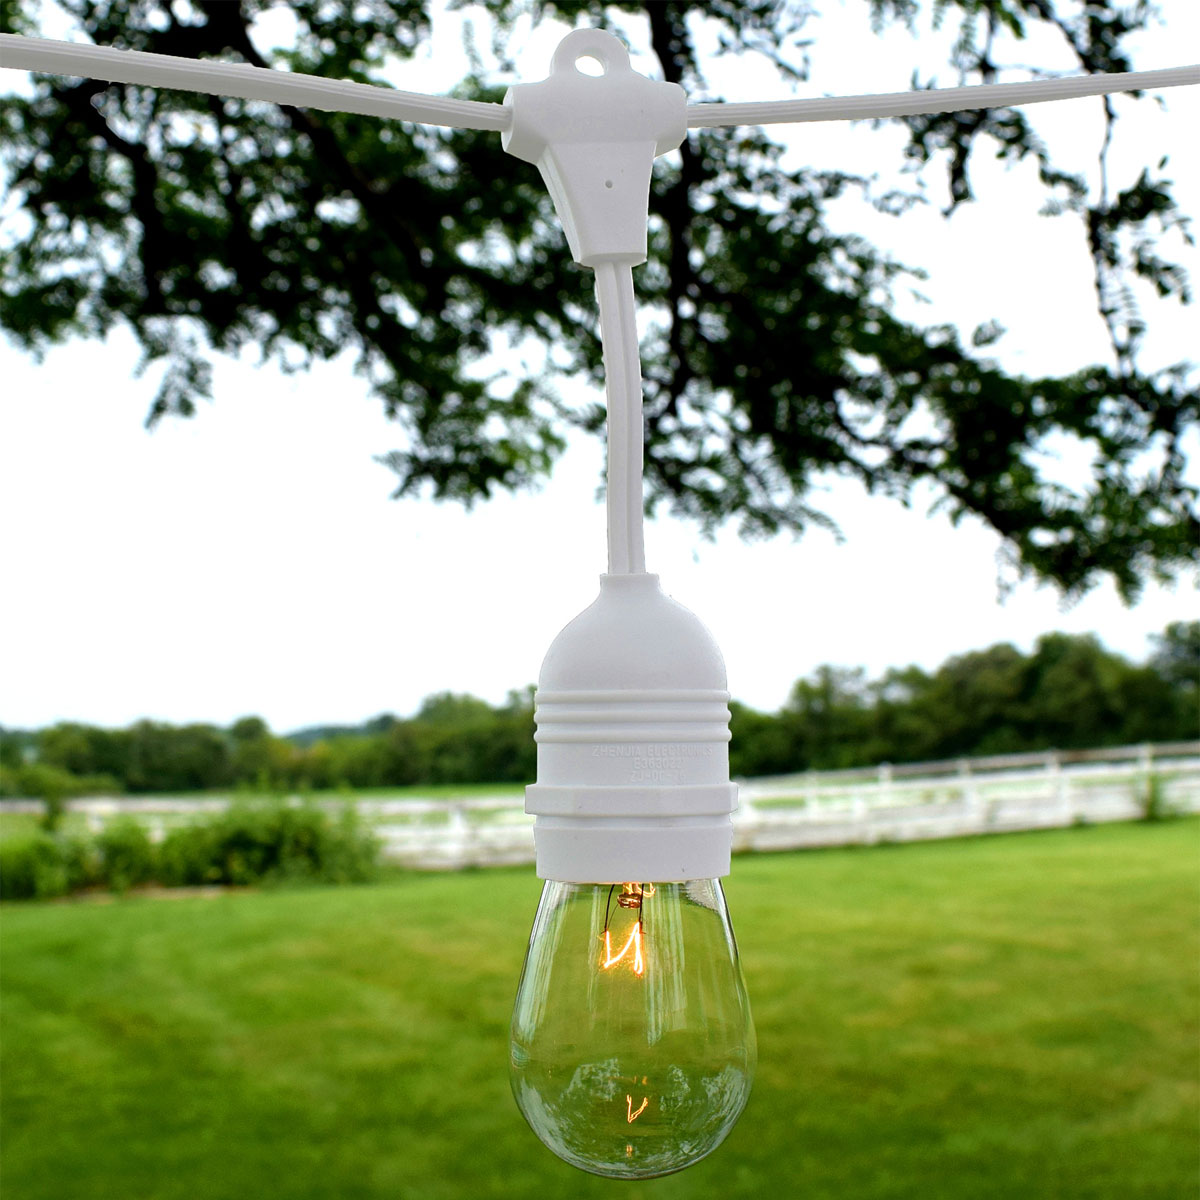 Outdoor Patio String Lights 54 White Suspended